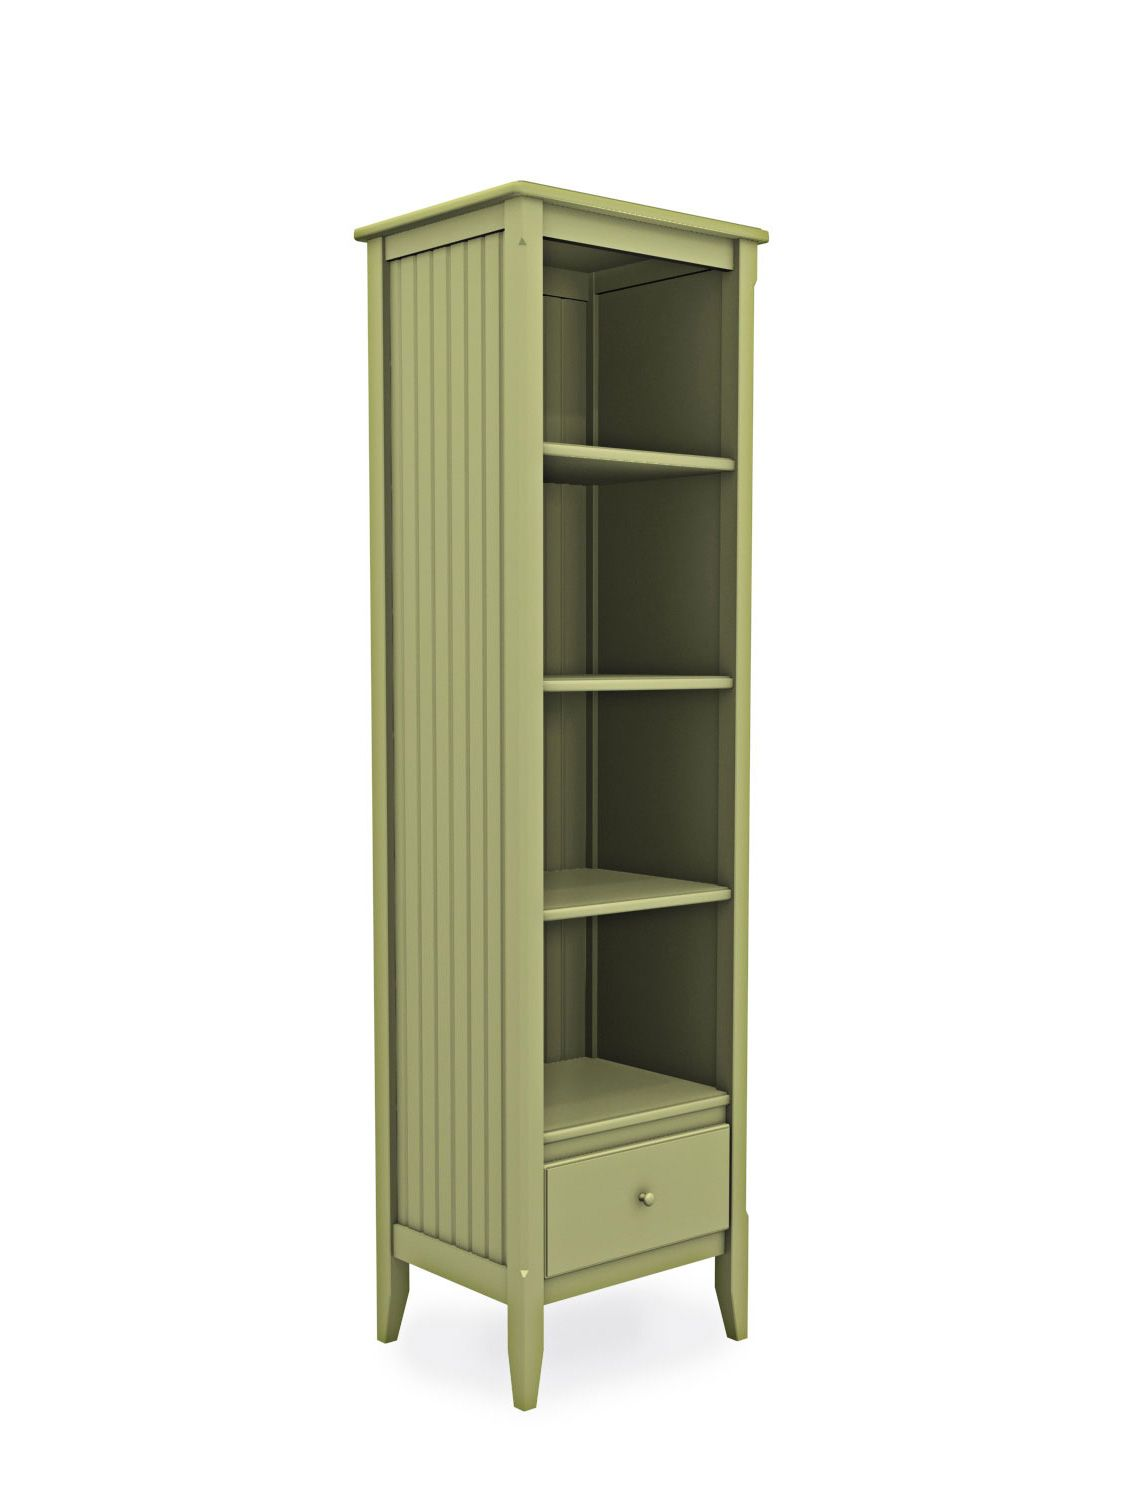 Tall Narrow Cottage Bookcase With Drawer Cottage Home Tall Narrow Bookcase Narrow Bookshelf Narrow Shelves